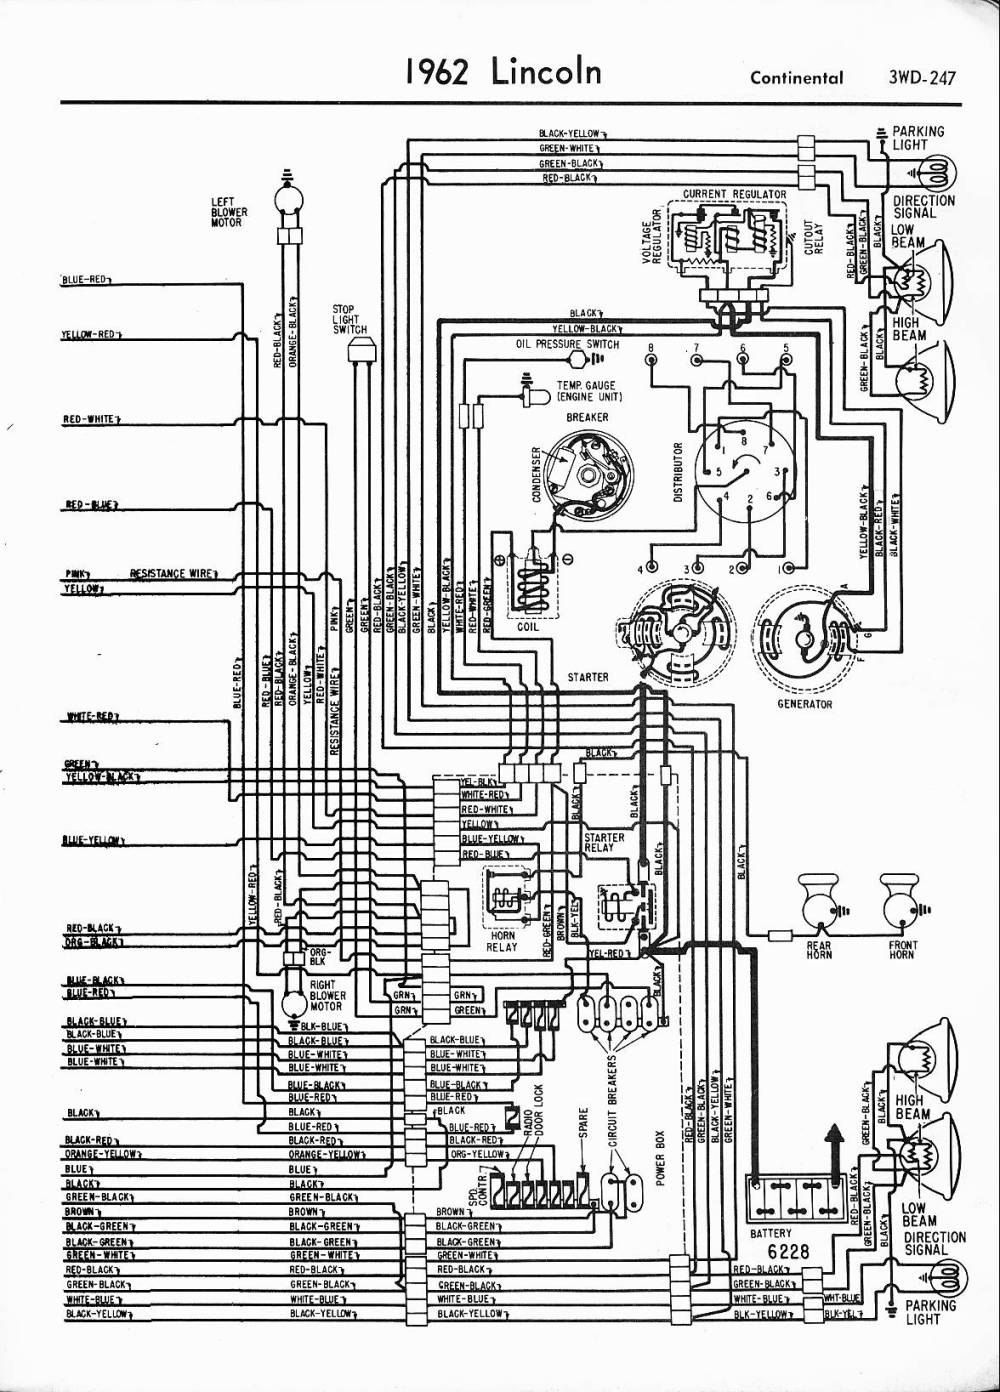 medium resolution of 1964 lincoln vacuum wiring diagram wiring diagrams schema rh 45 verena hoegerl de 1999 lincoln continental